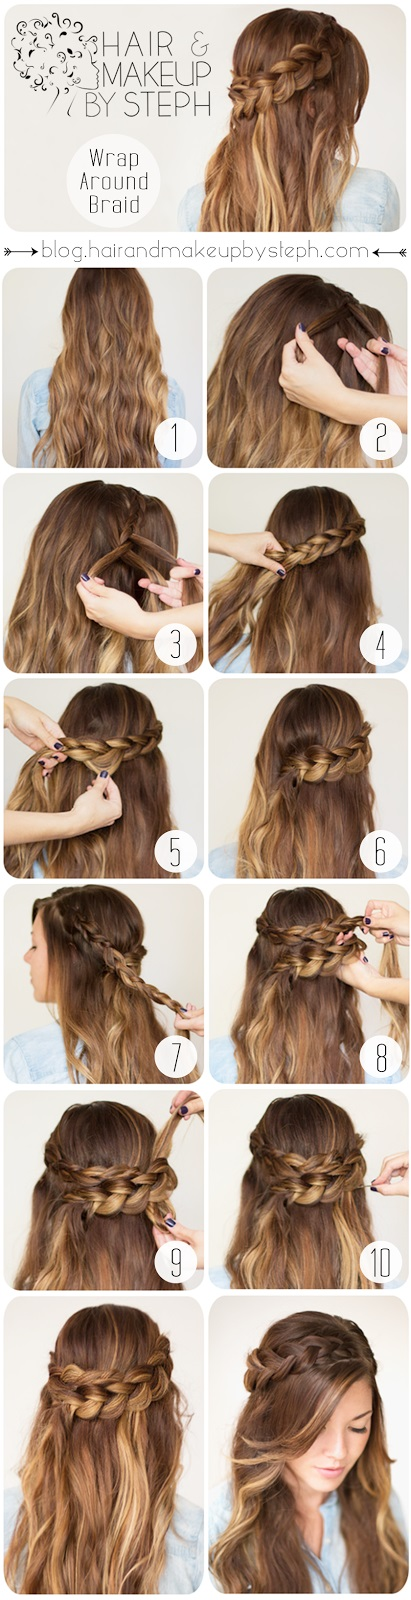 DIY Hairstyles:  Cute Wrap Around Braid for Spring